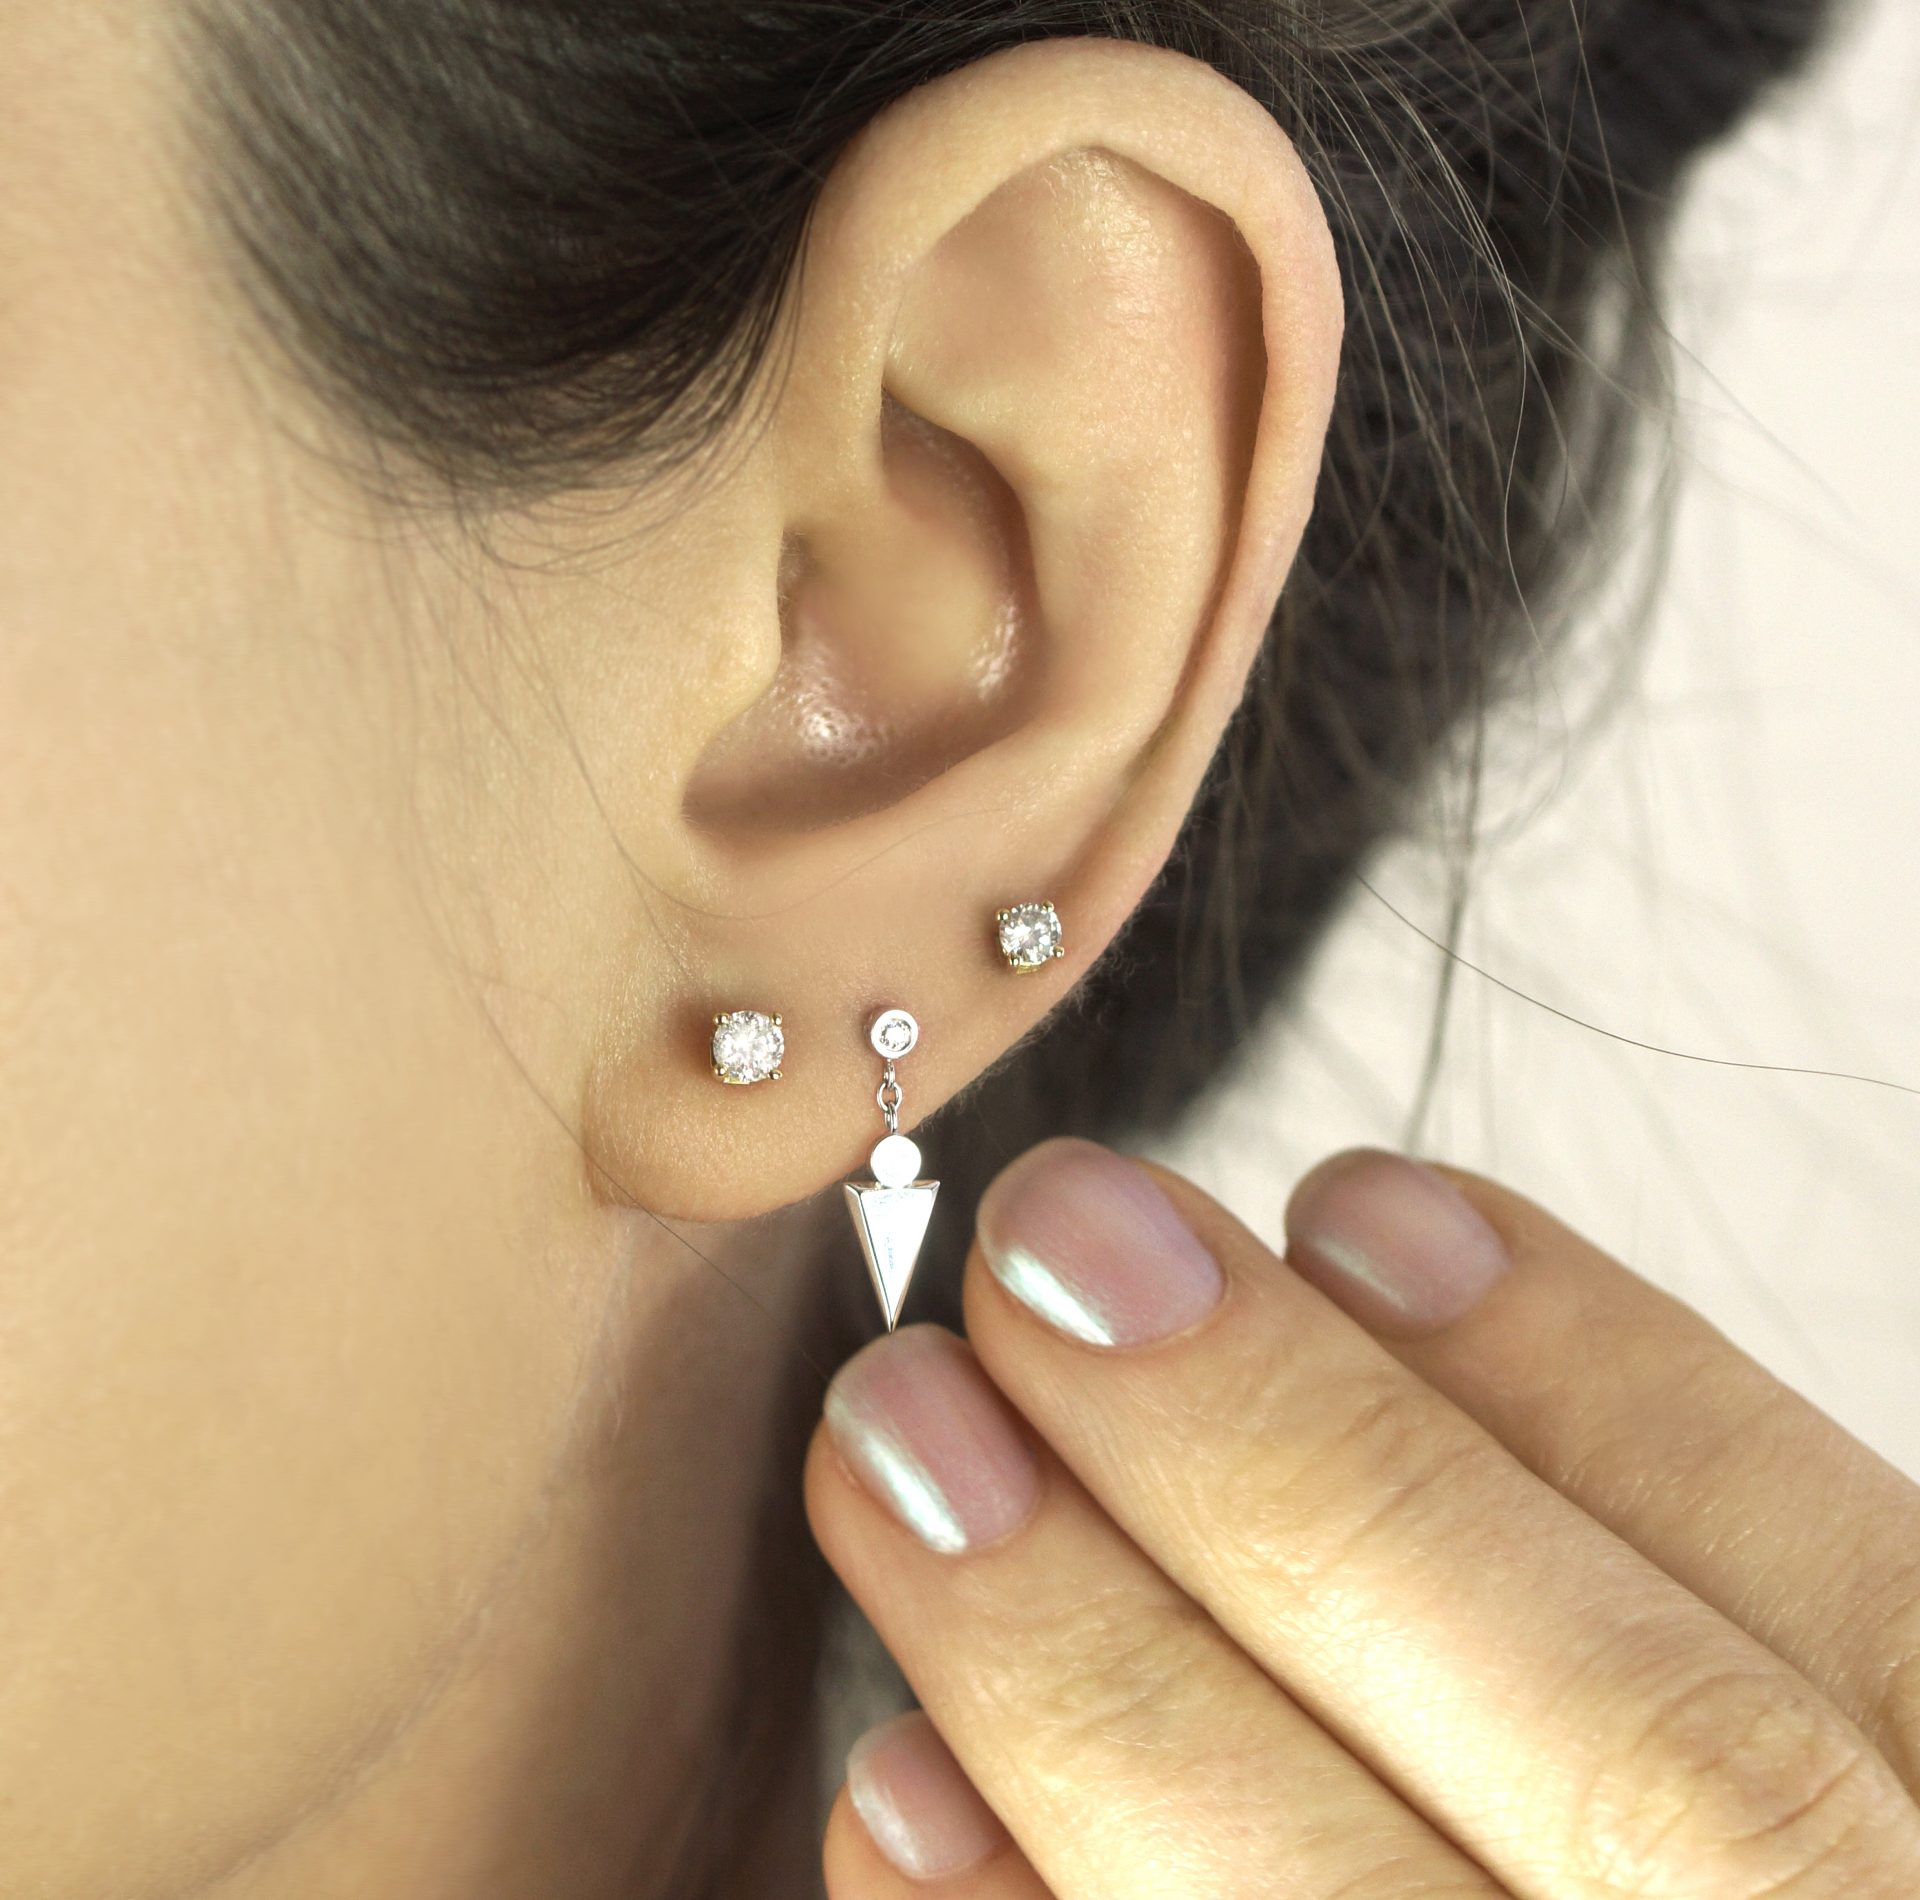 Multiple piercings have become a global trend